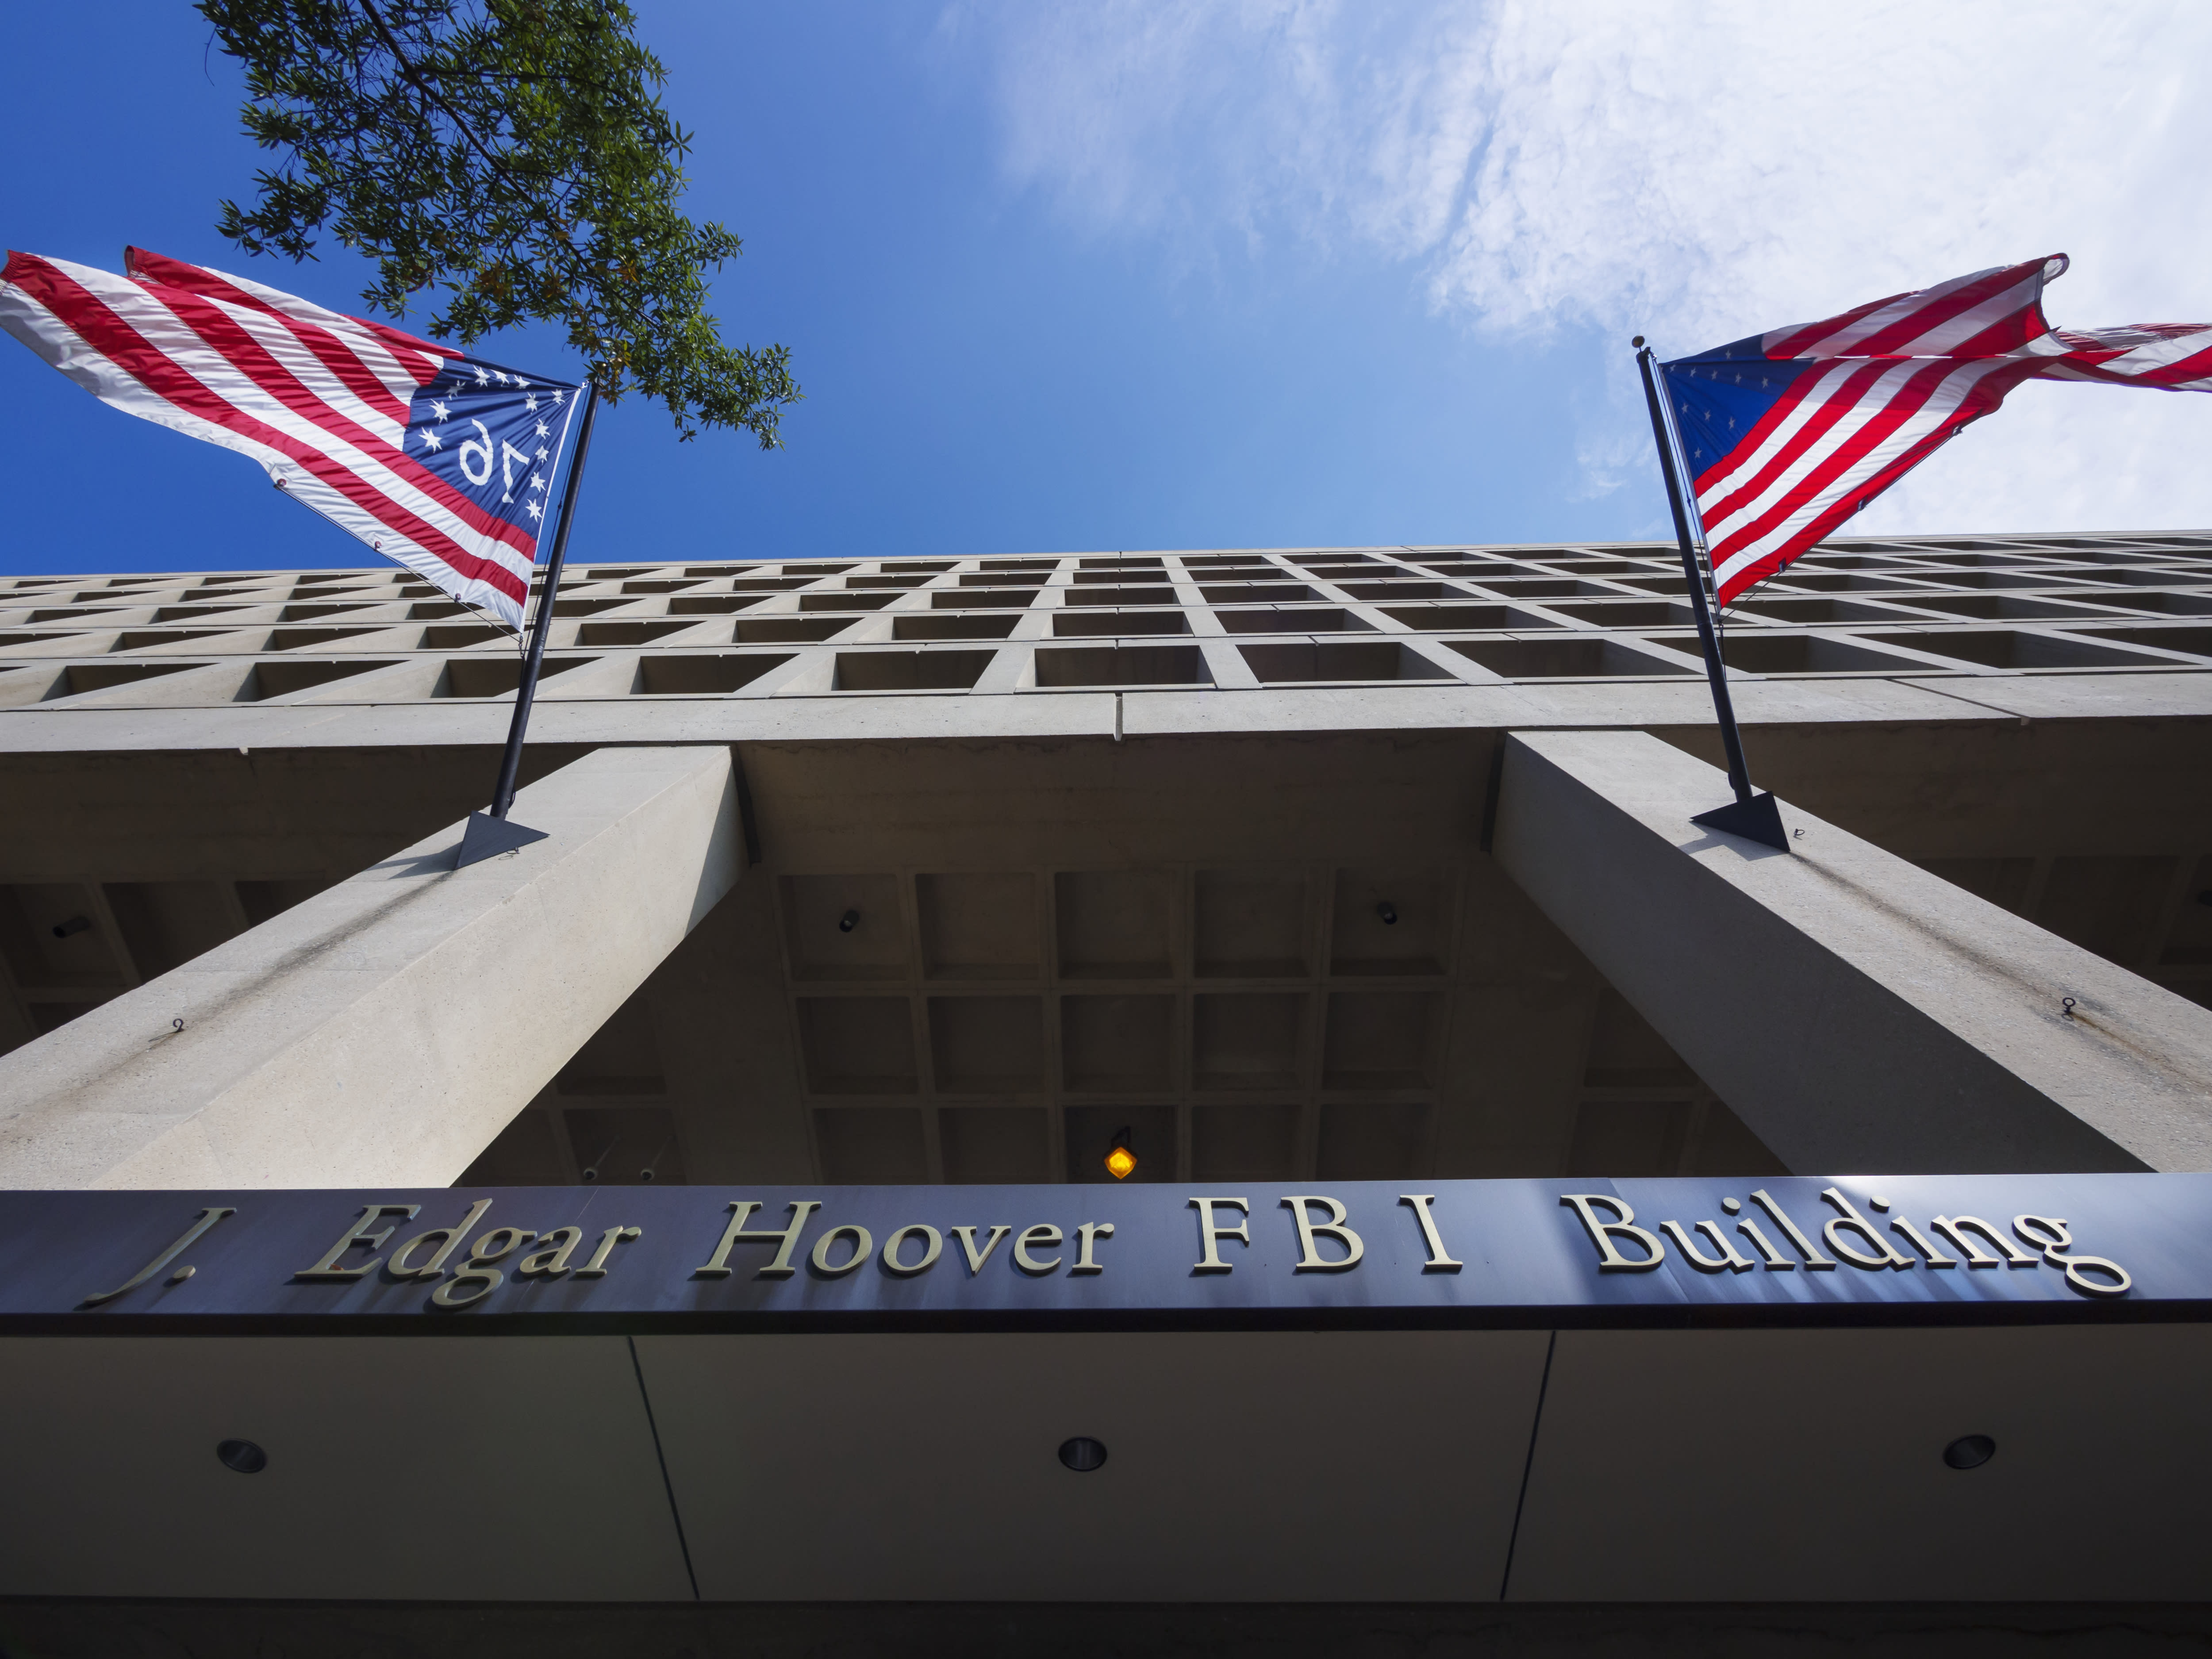 Judge rules FBI, NSA broke the law and court orders with data collection | Engadget